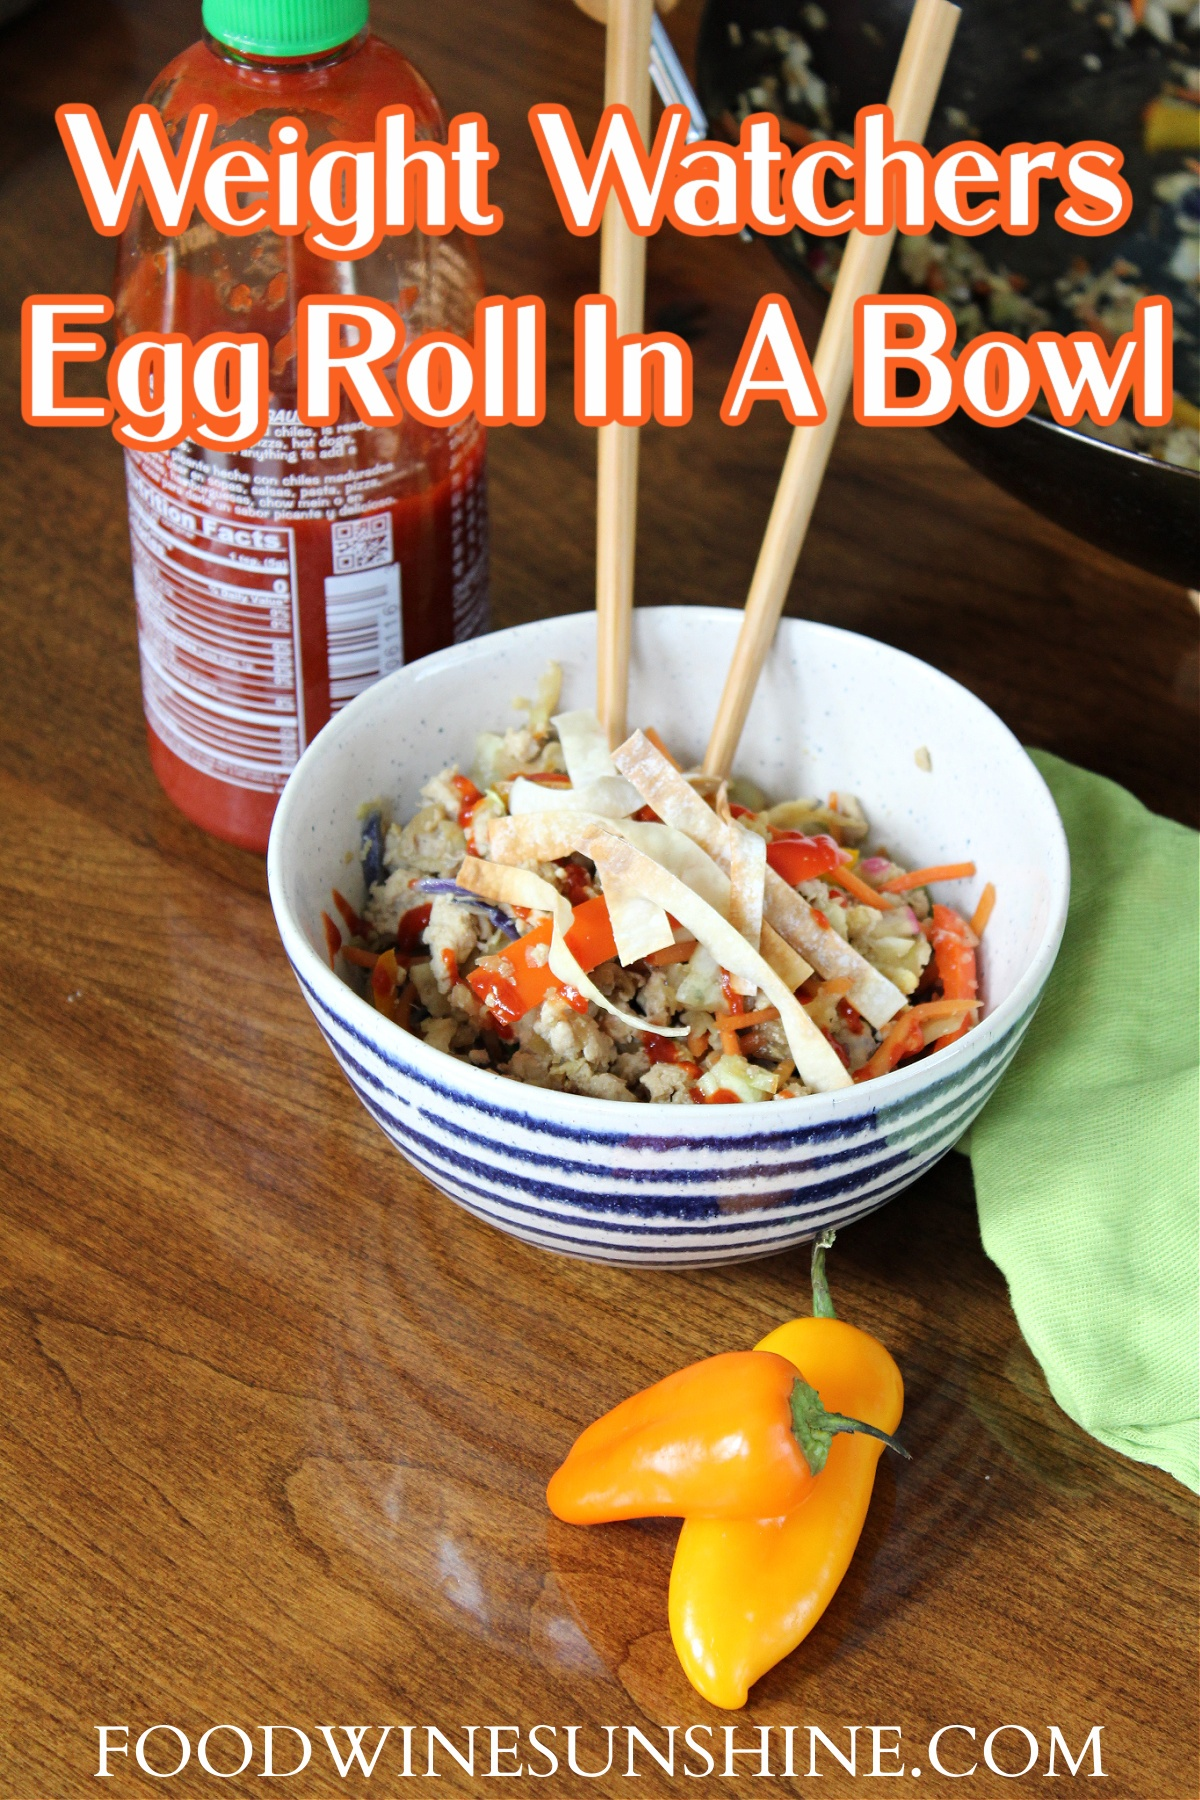 How To Make Weight Watchers Egg Roll In A Bowl